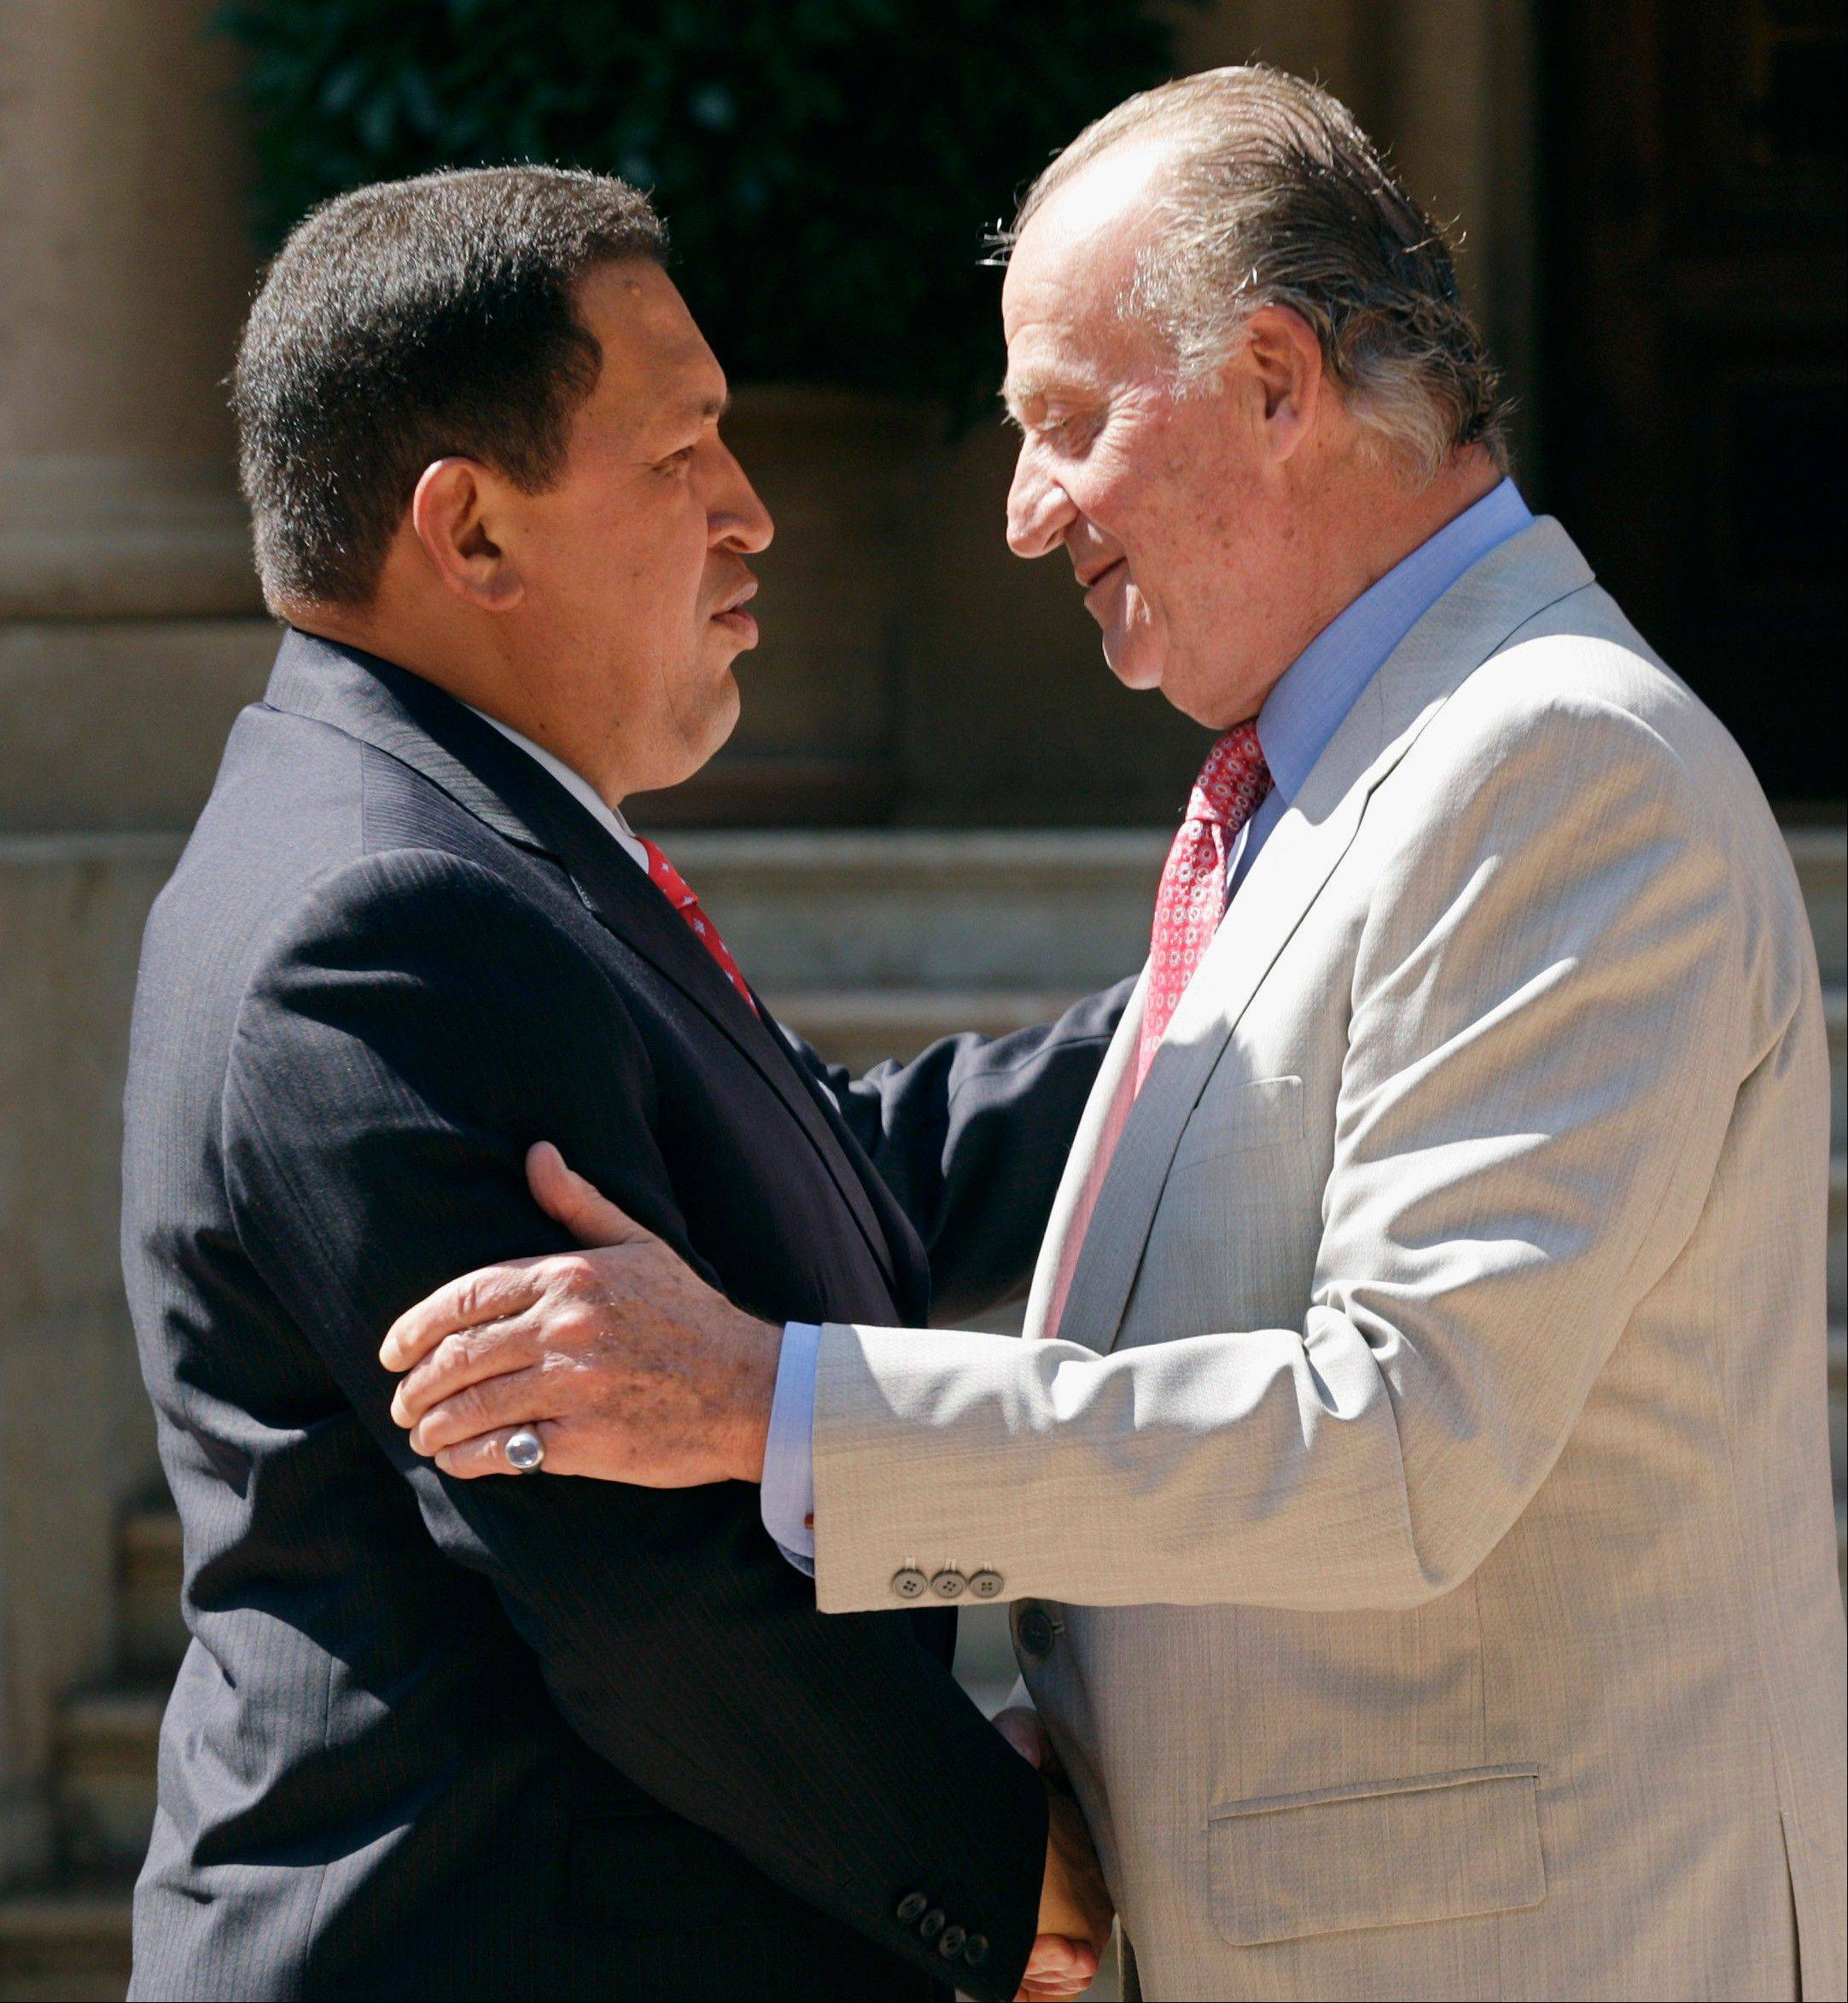 In this July 25, 2008 file photo, Spain's King Juan Carlos, right, shakes hands with Venezuela's President Hugo Chavez at the Marivent Palace in Palma de Mallorca, Spain.